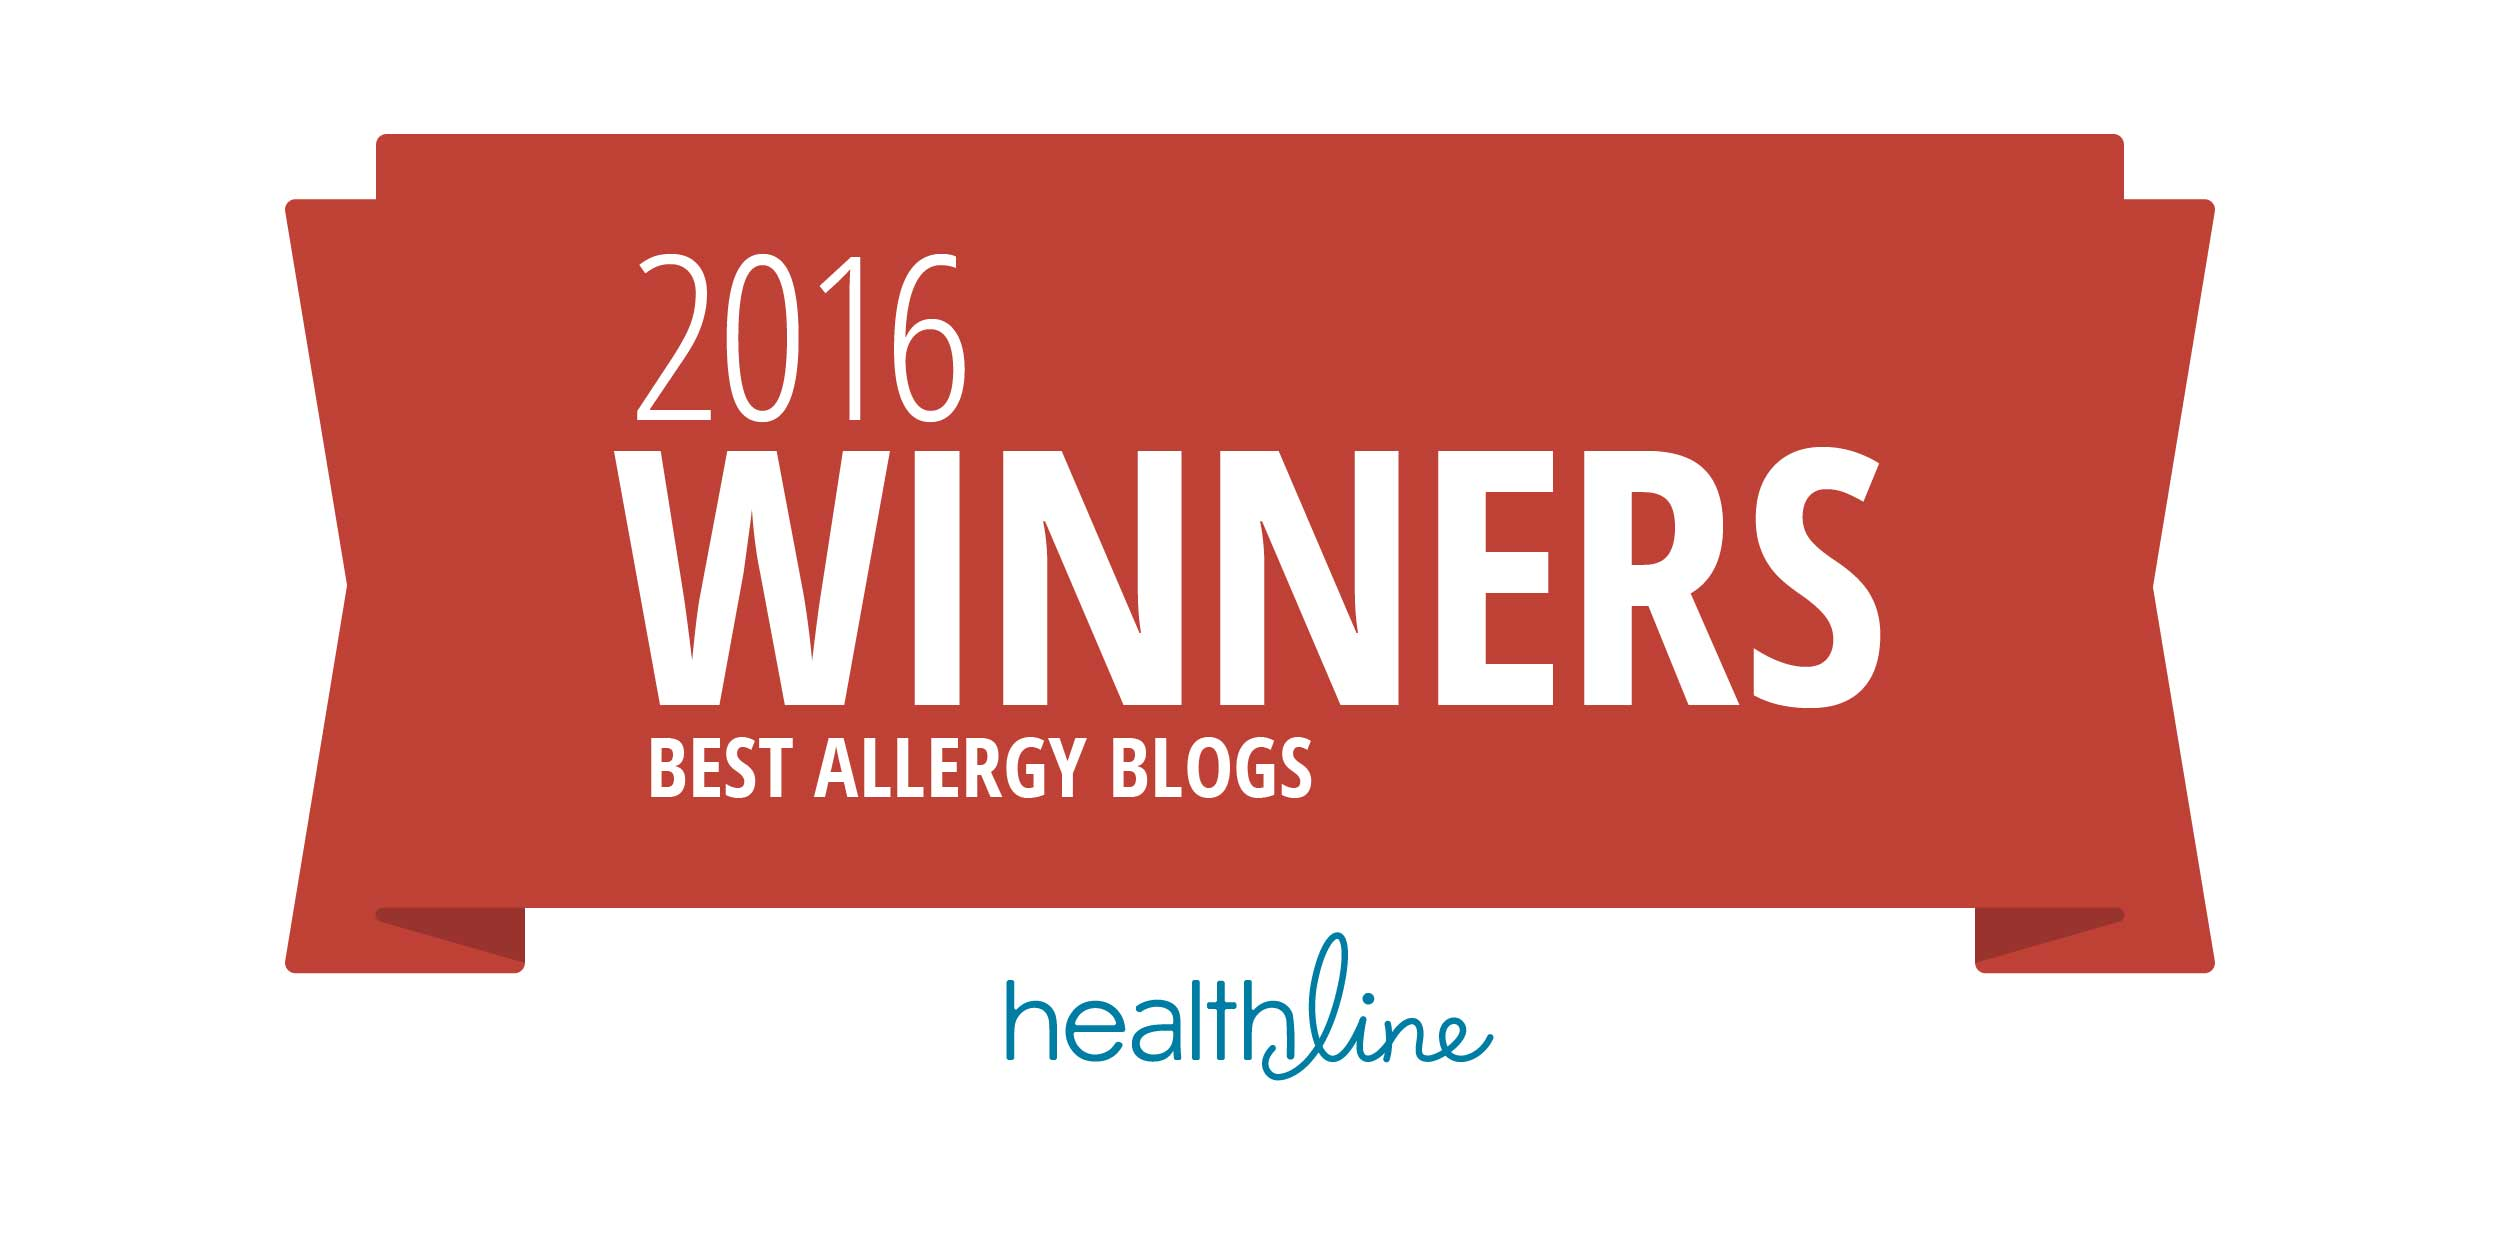 The Best Allergy Blogs of the Year